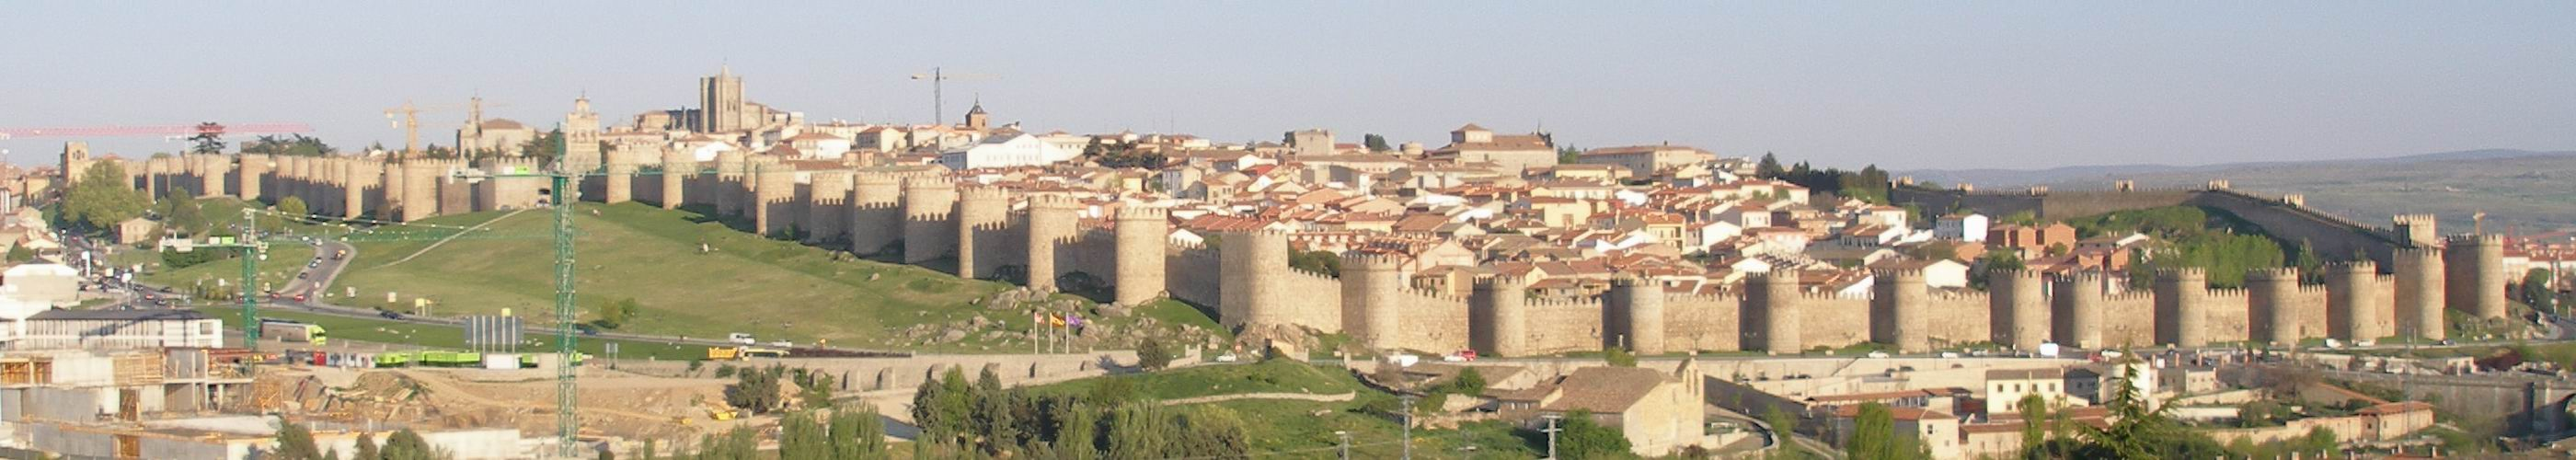 Ávila with its famous town walls